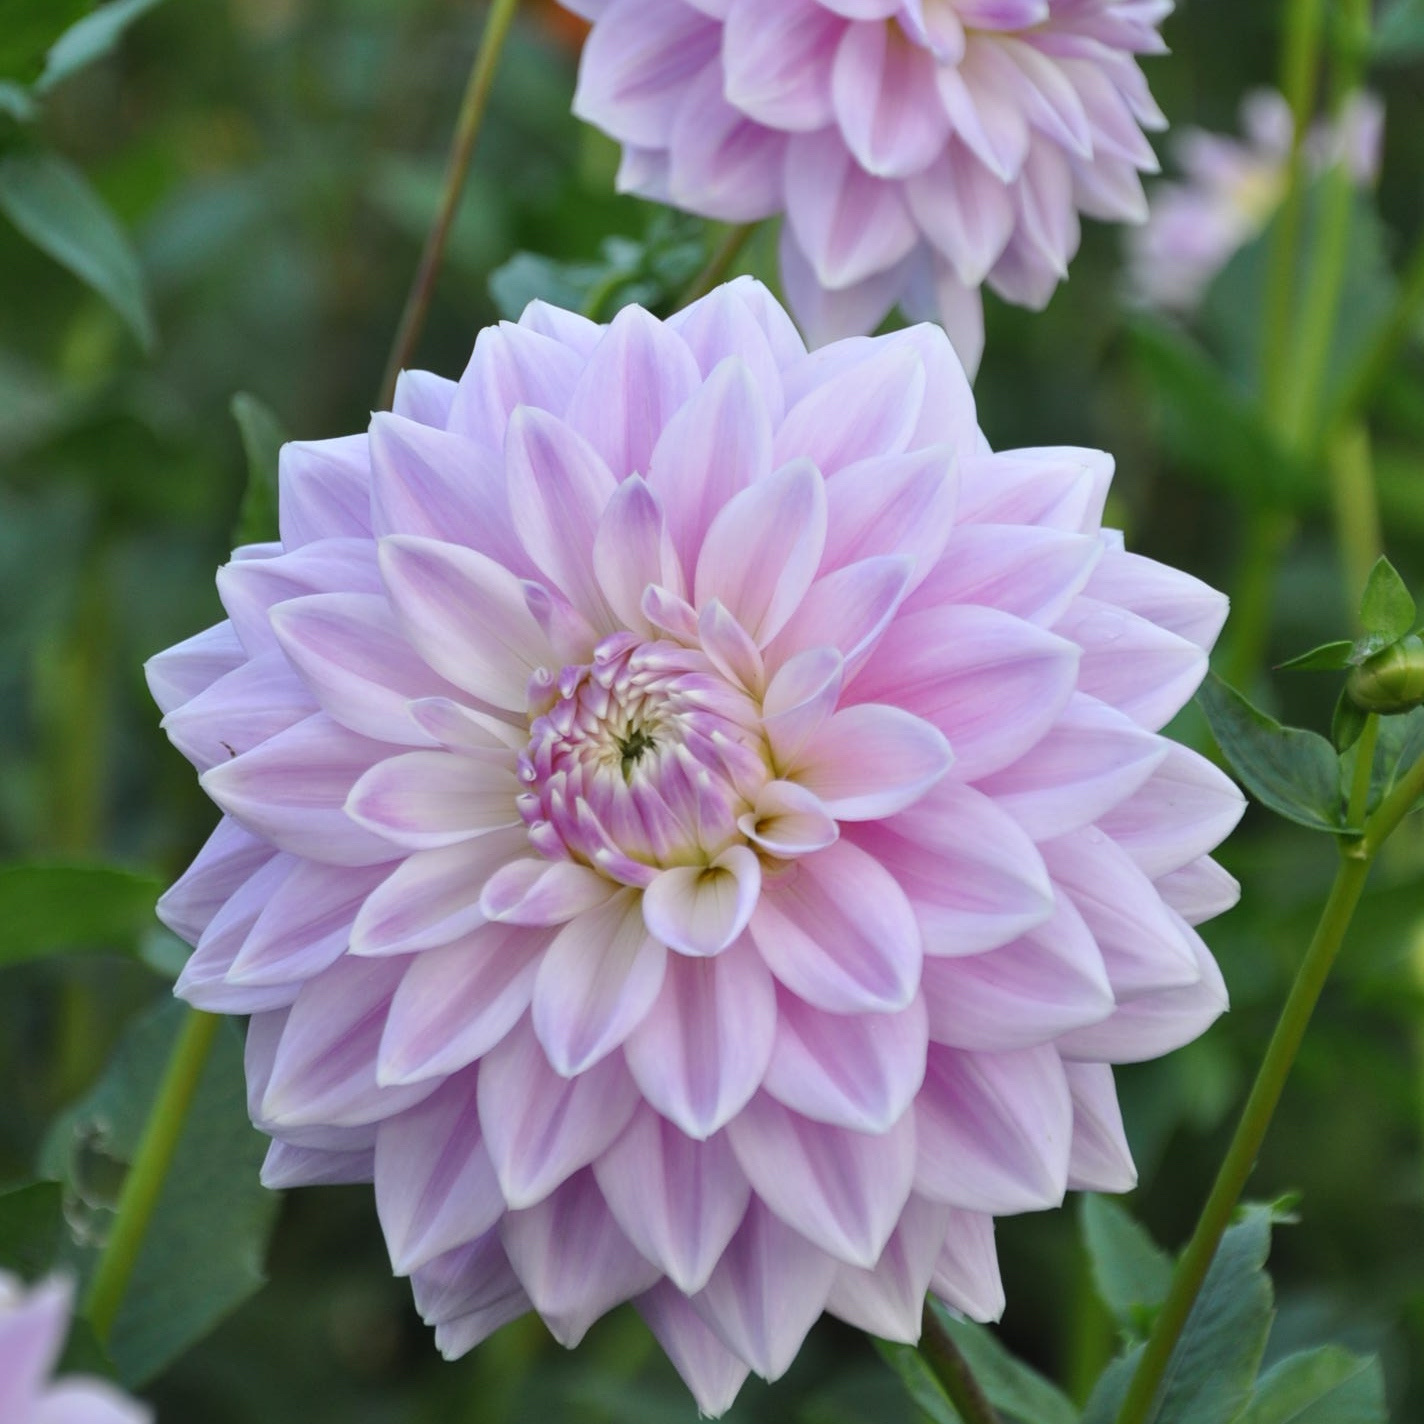 Ferncliff inspiration light purple dahlia tuber variety out in the garden